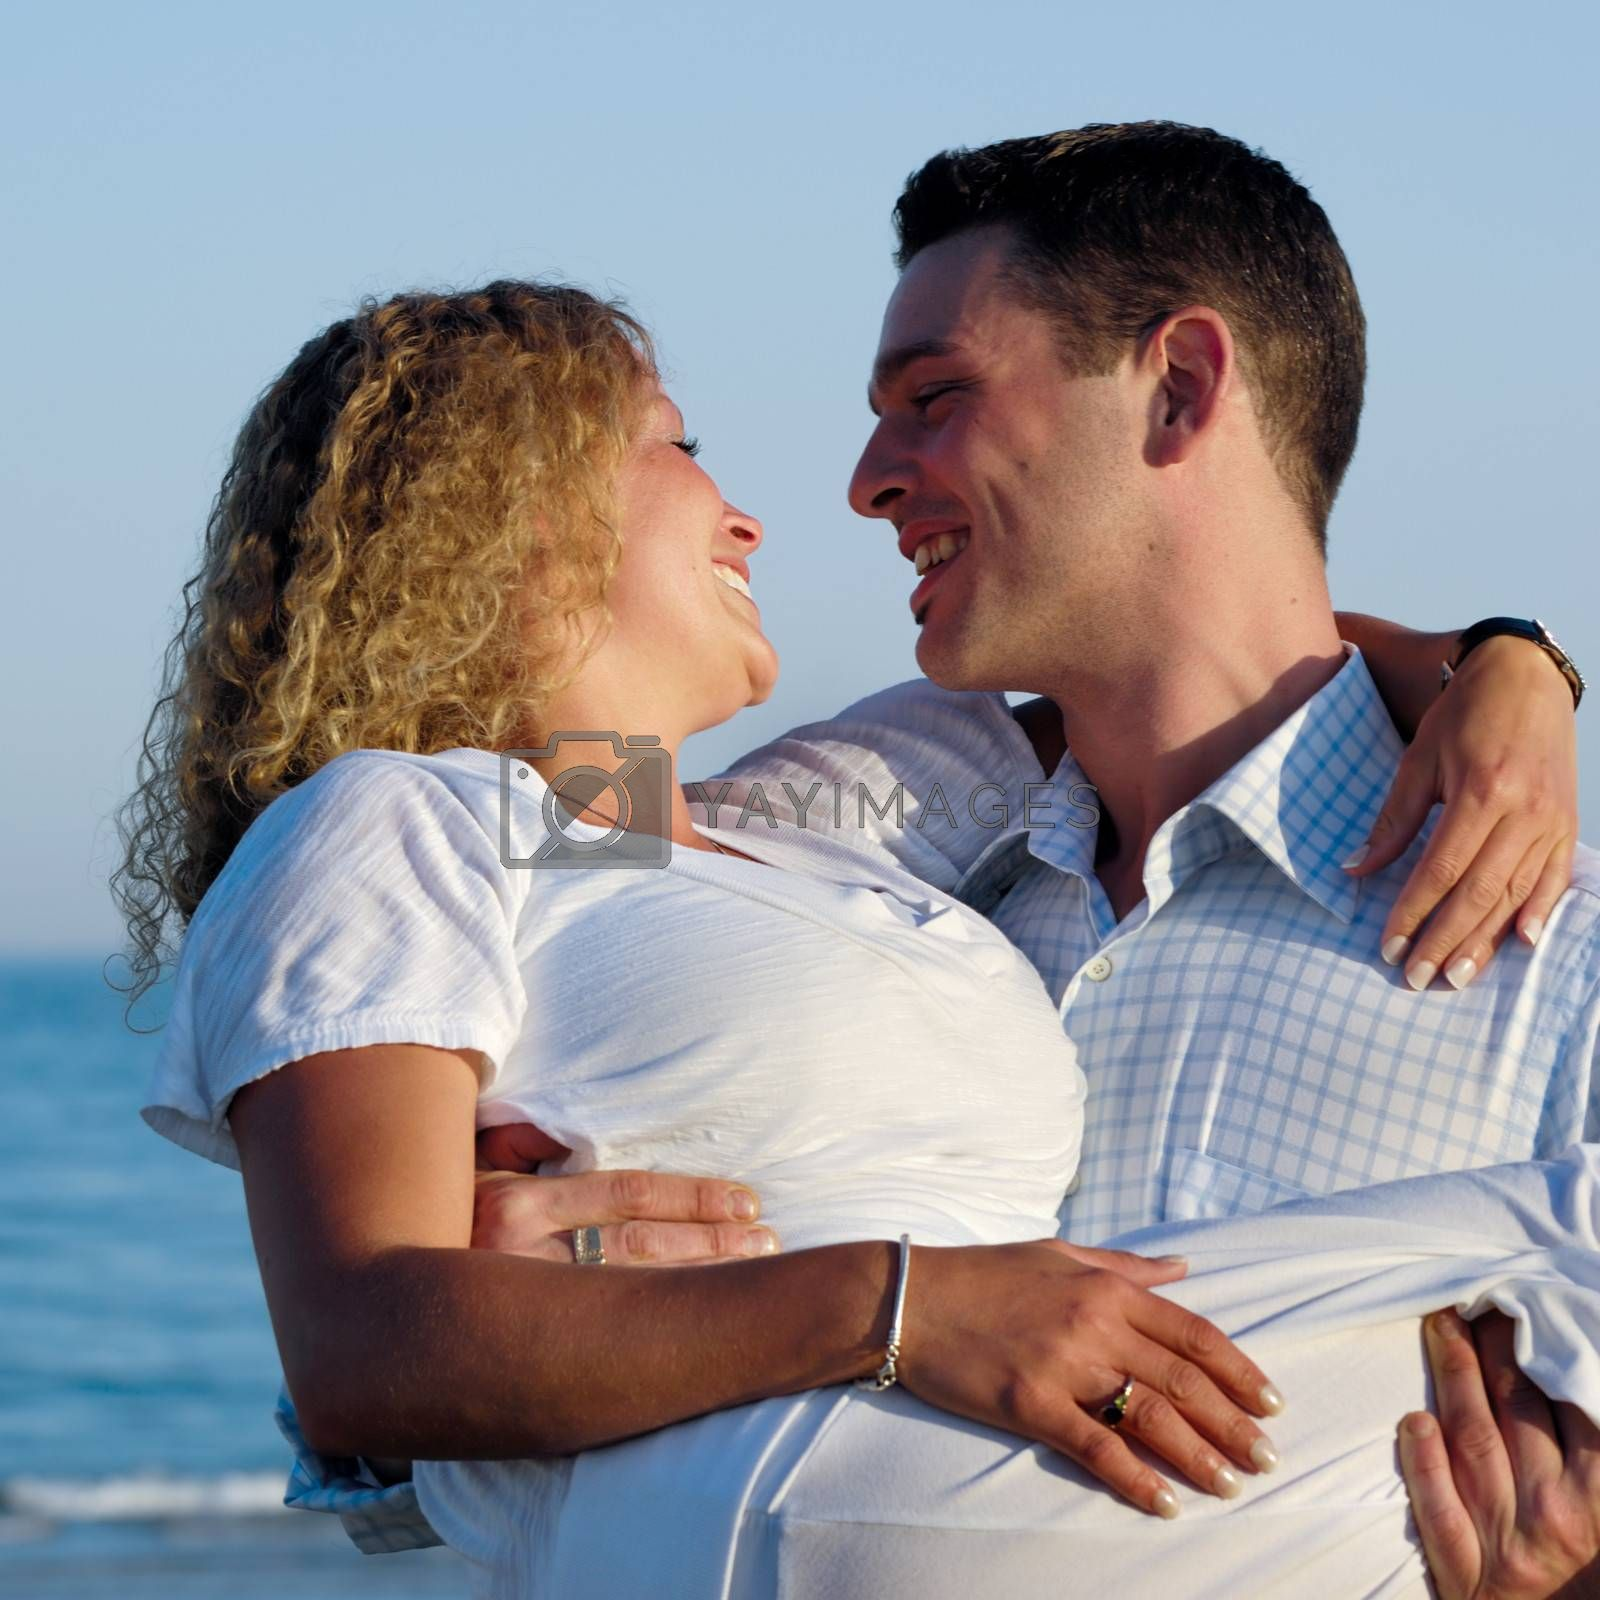 A happy woman and man in love at beach. The the young man is lifting his girlfriend.